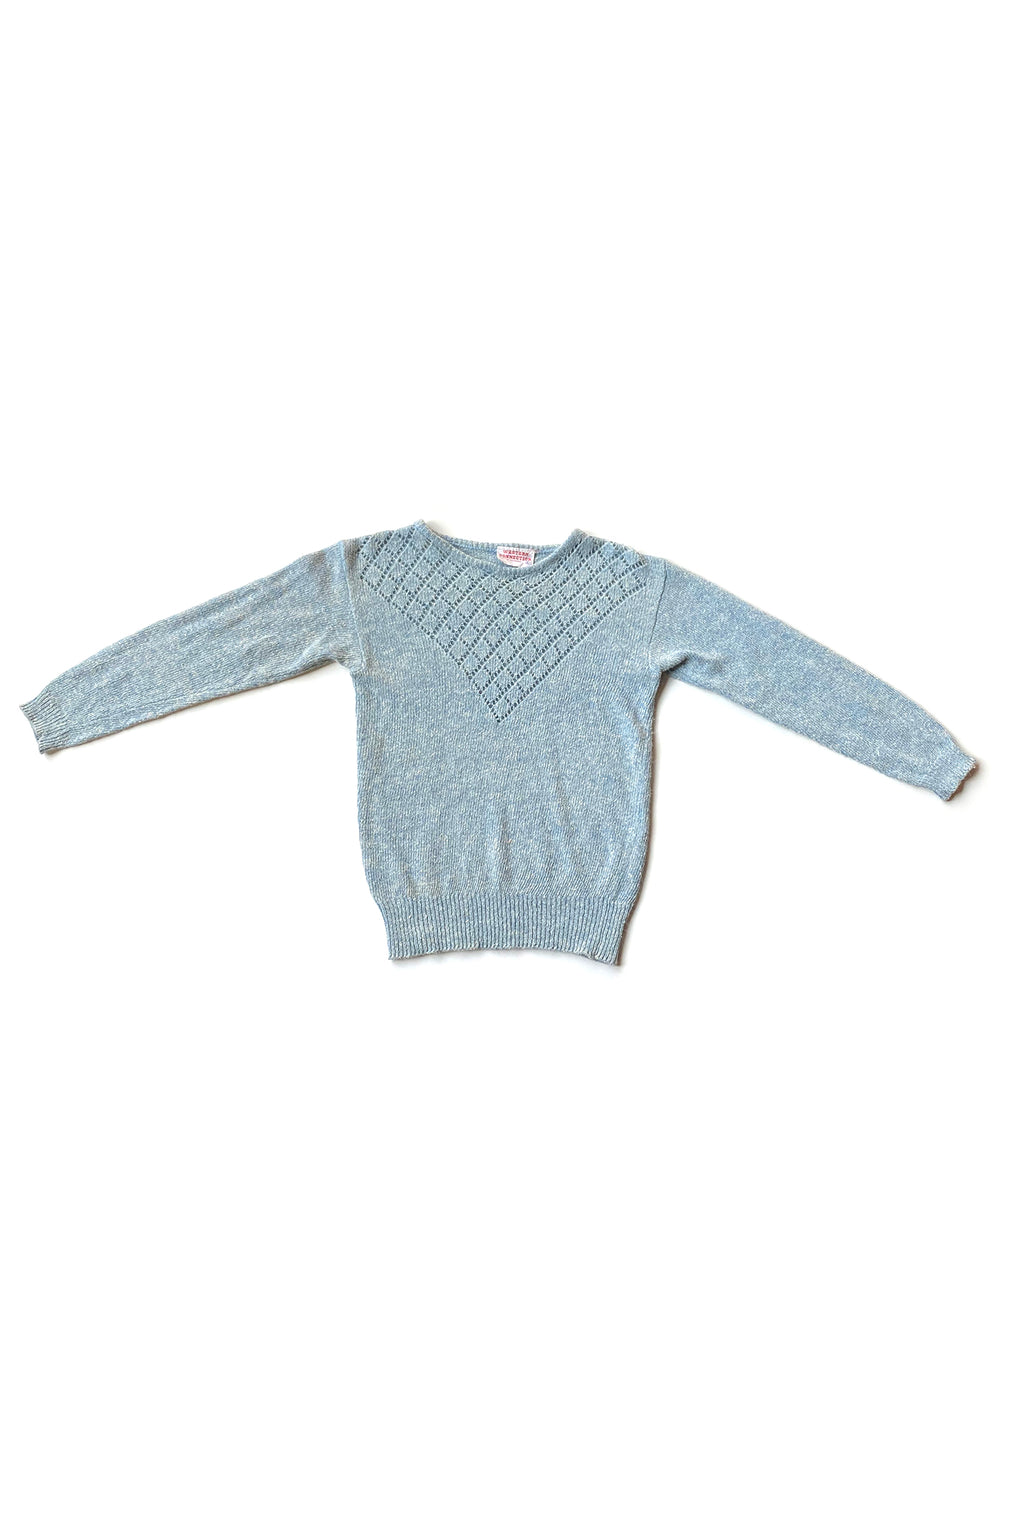 blue knit western connections vintage sweater